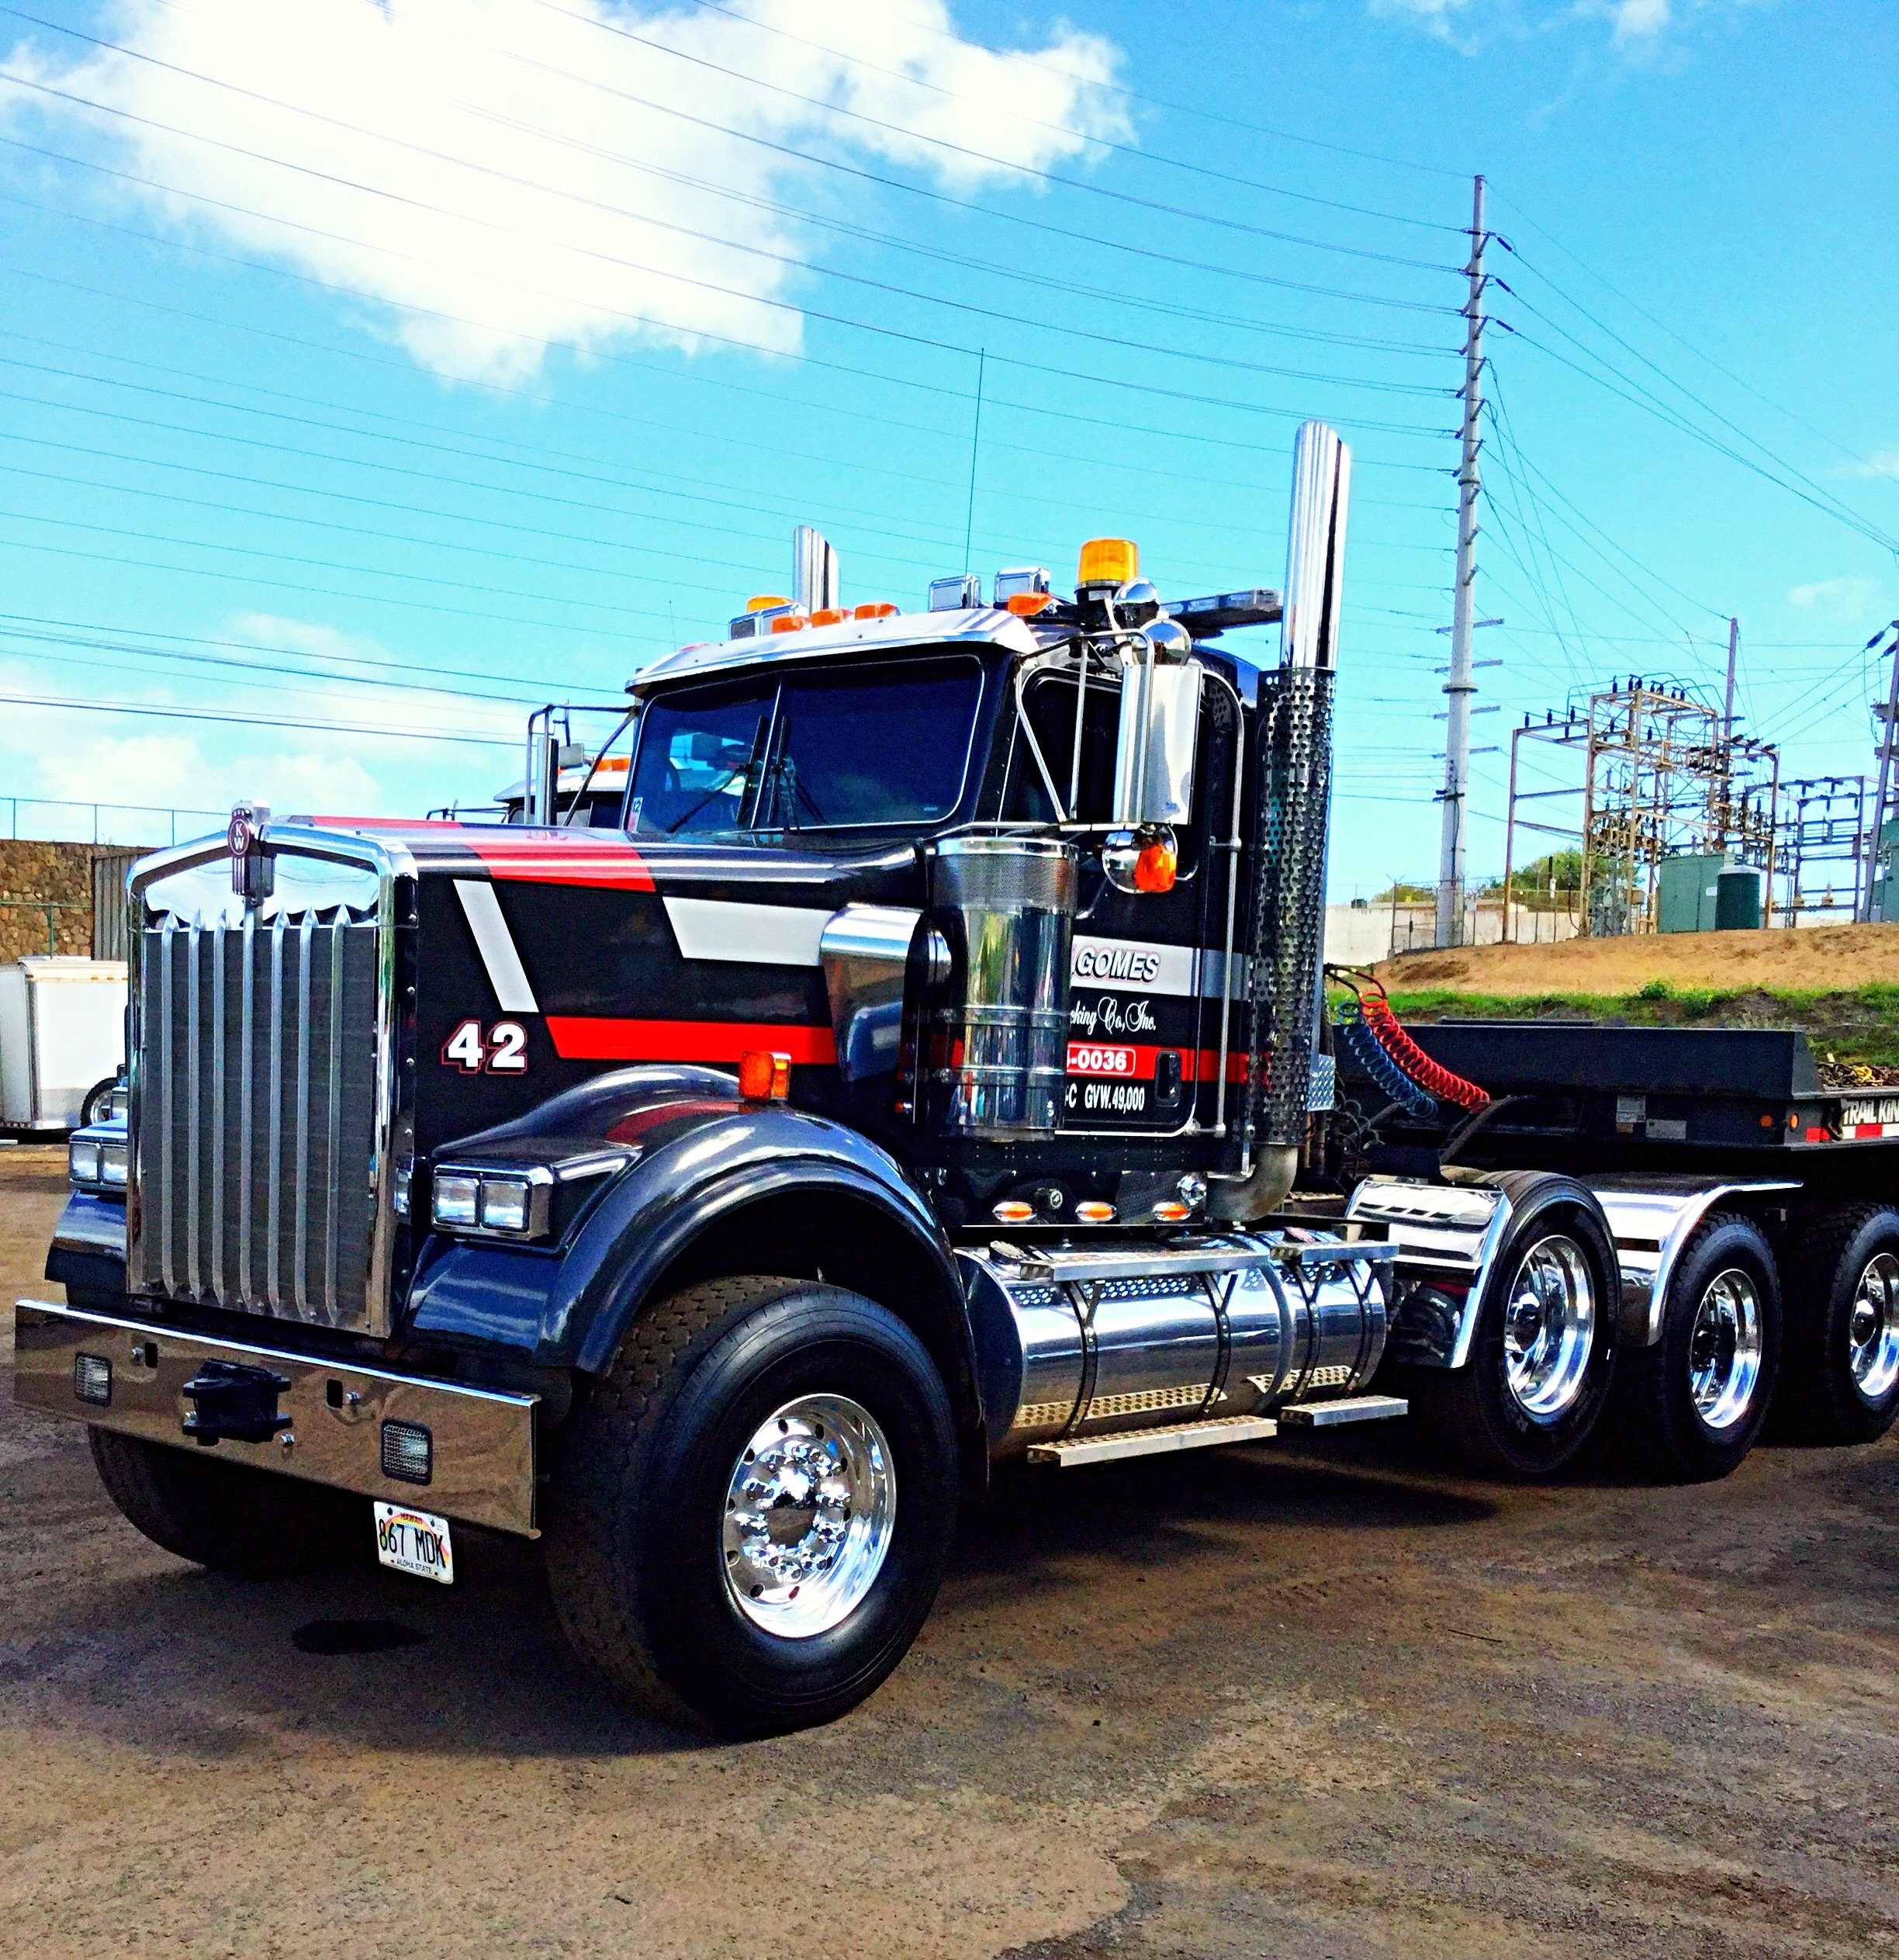 TJ Gomes Trucking Company is a fantastic demolition contractor in Wailuku, HI